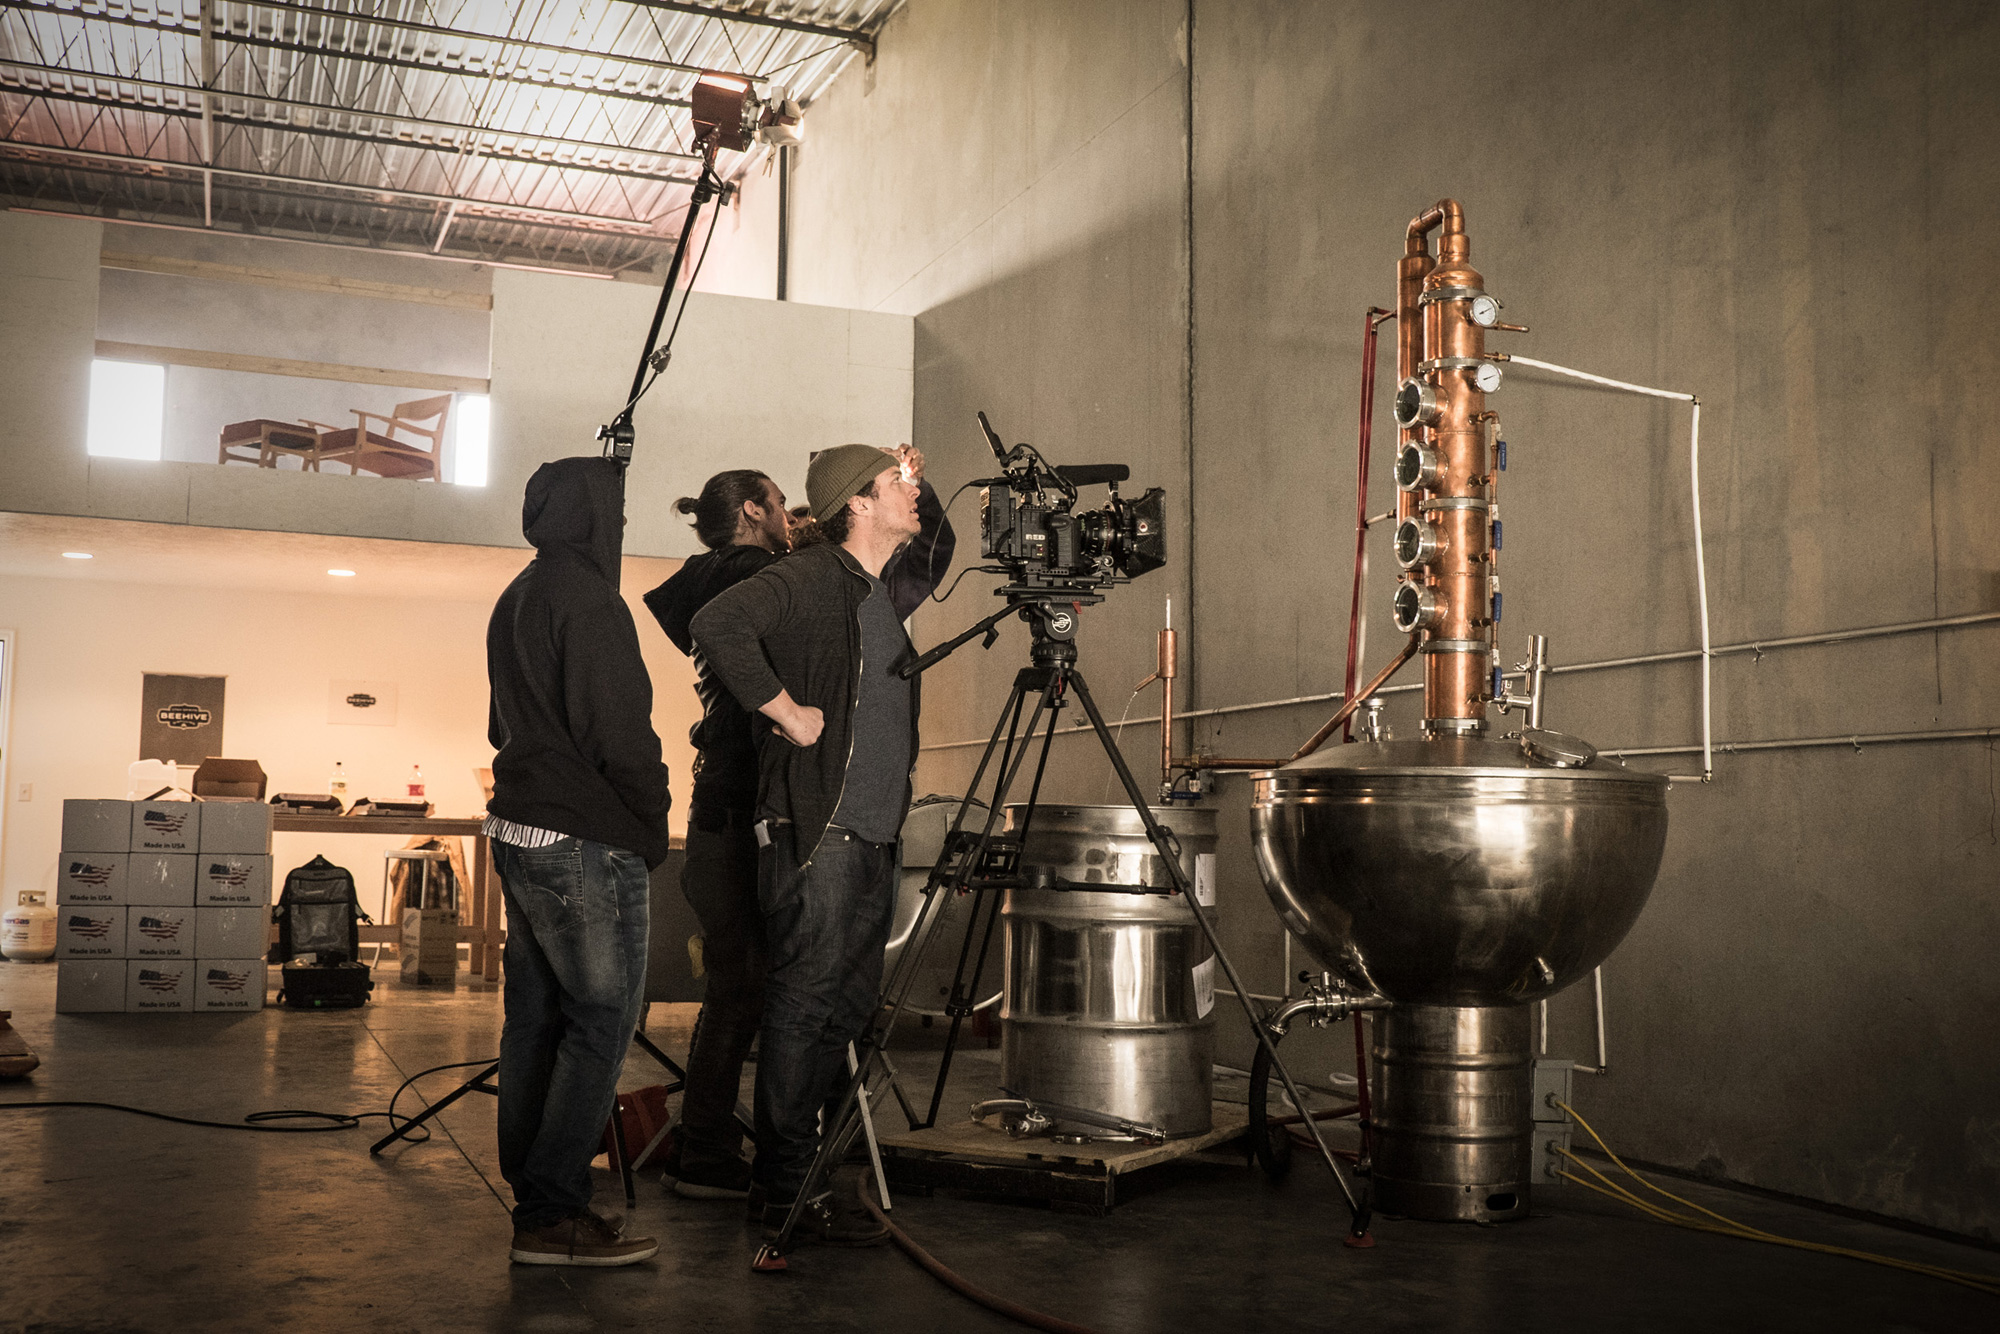 Beehive Distilling Small Batch Craft Gin Salt Lake City Utah 16